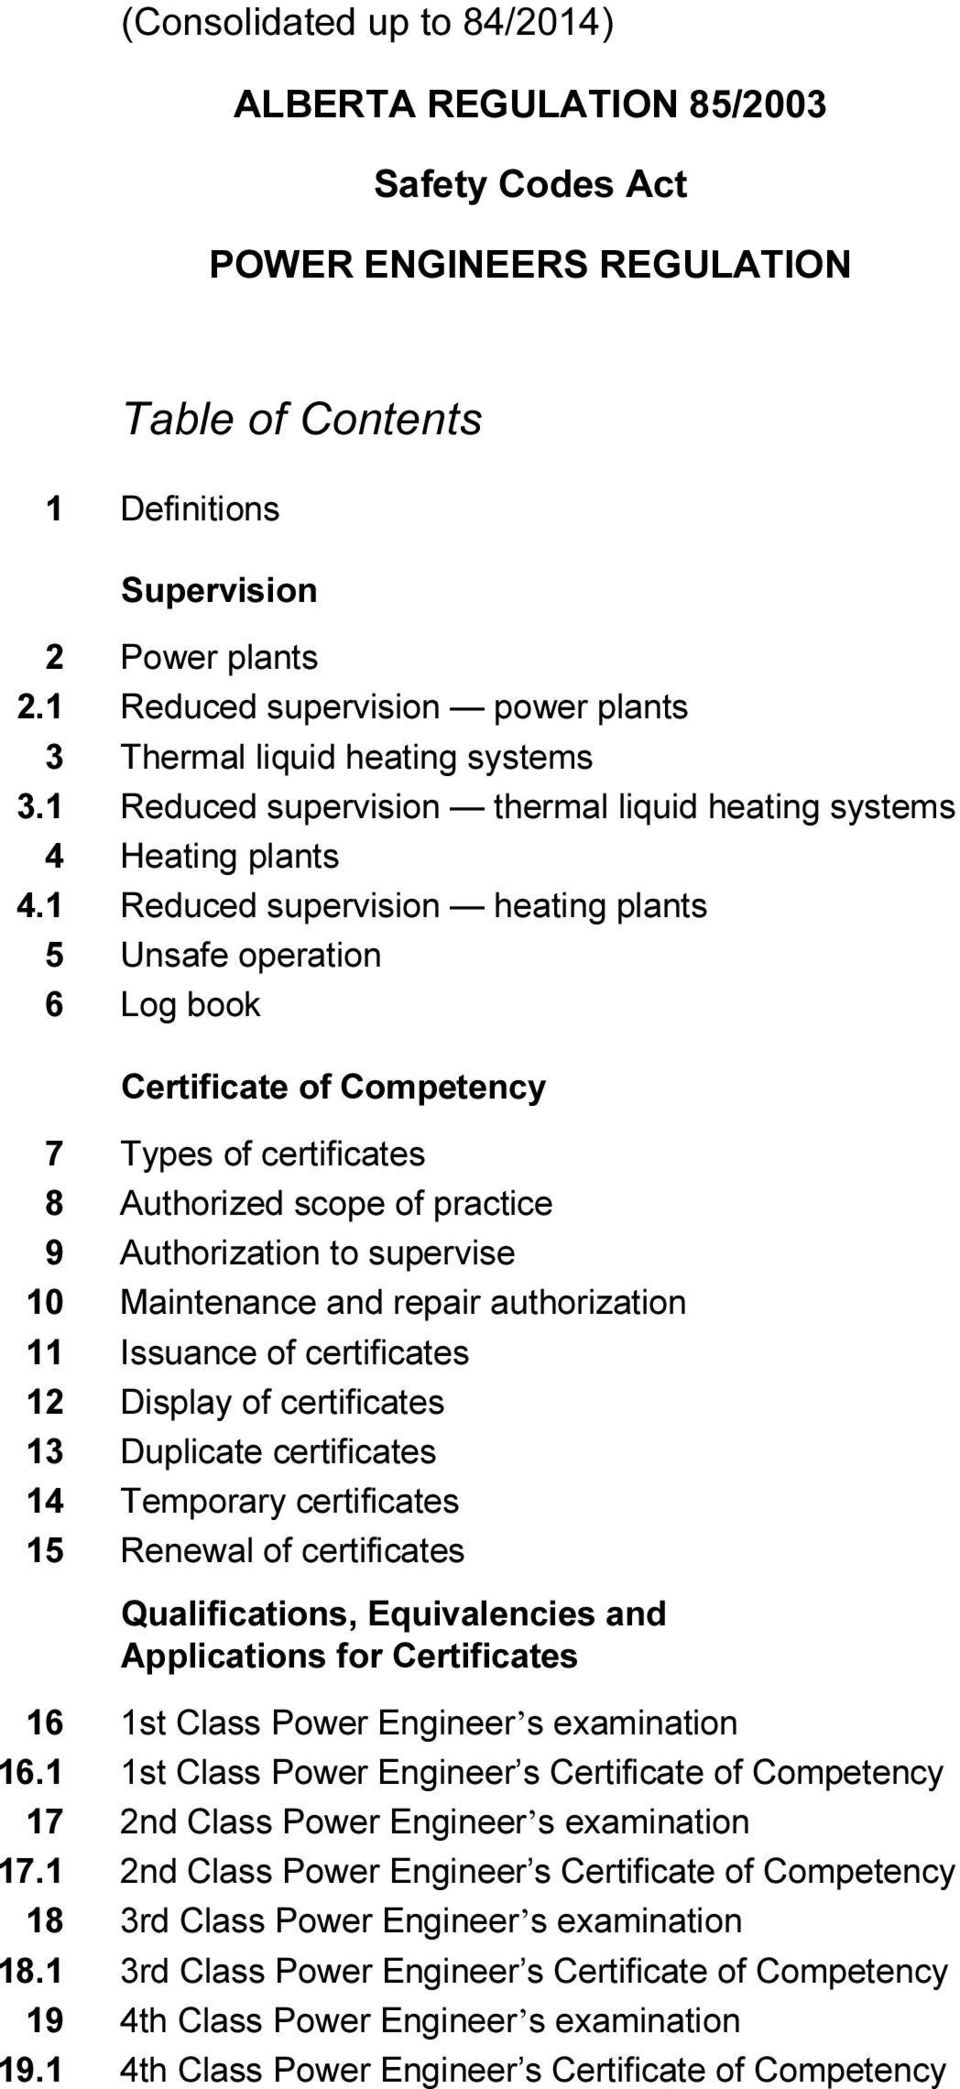 1 Reduced supervision heating plants 5 Unsafe operation 6 Log book Certificate of Competency 7 Types of certificates 8 Authorized scope of practice 9 Authorization to supervise 10 Maintenance and